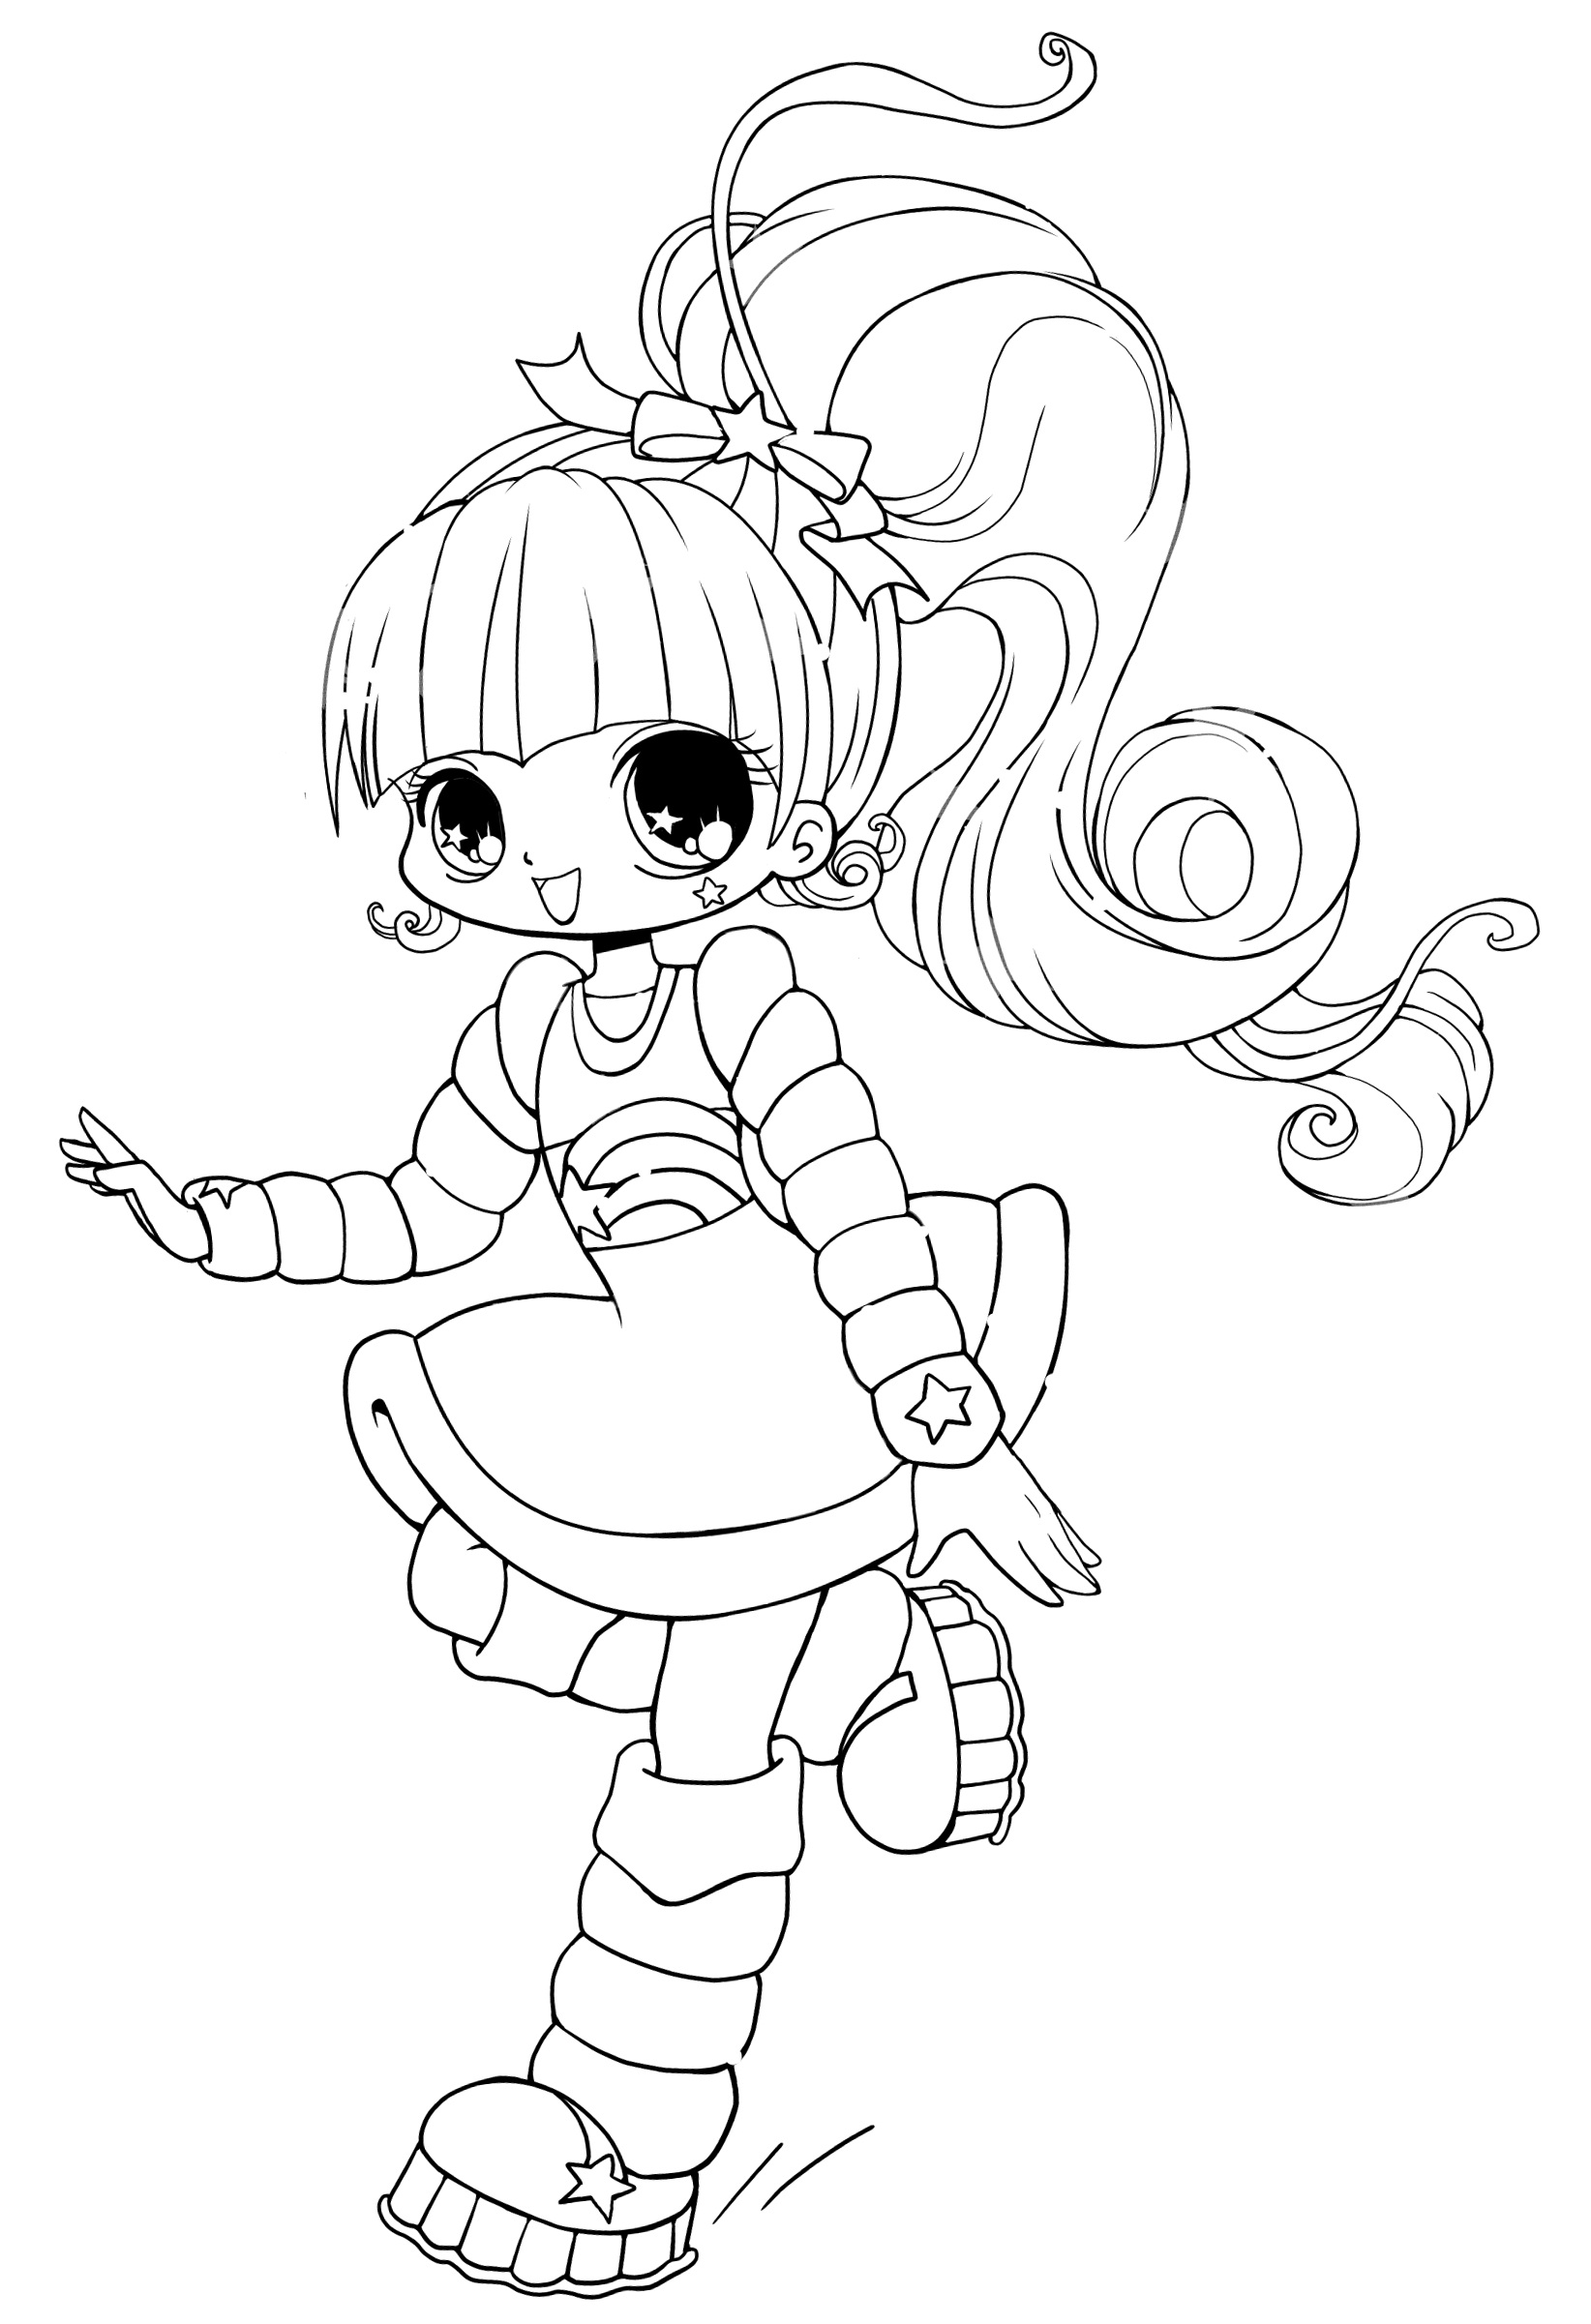 coloring cute pictures cute coloring pages best coloring pages for kids pictures cute coloring